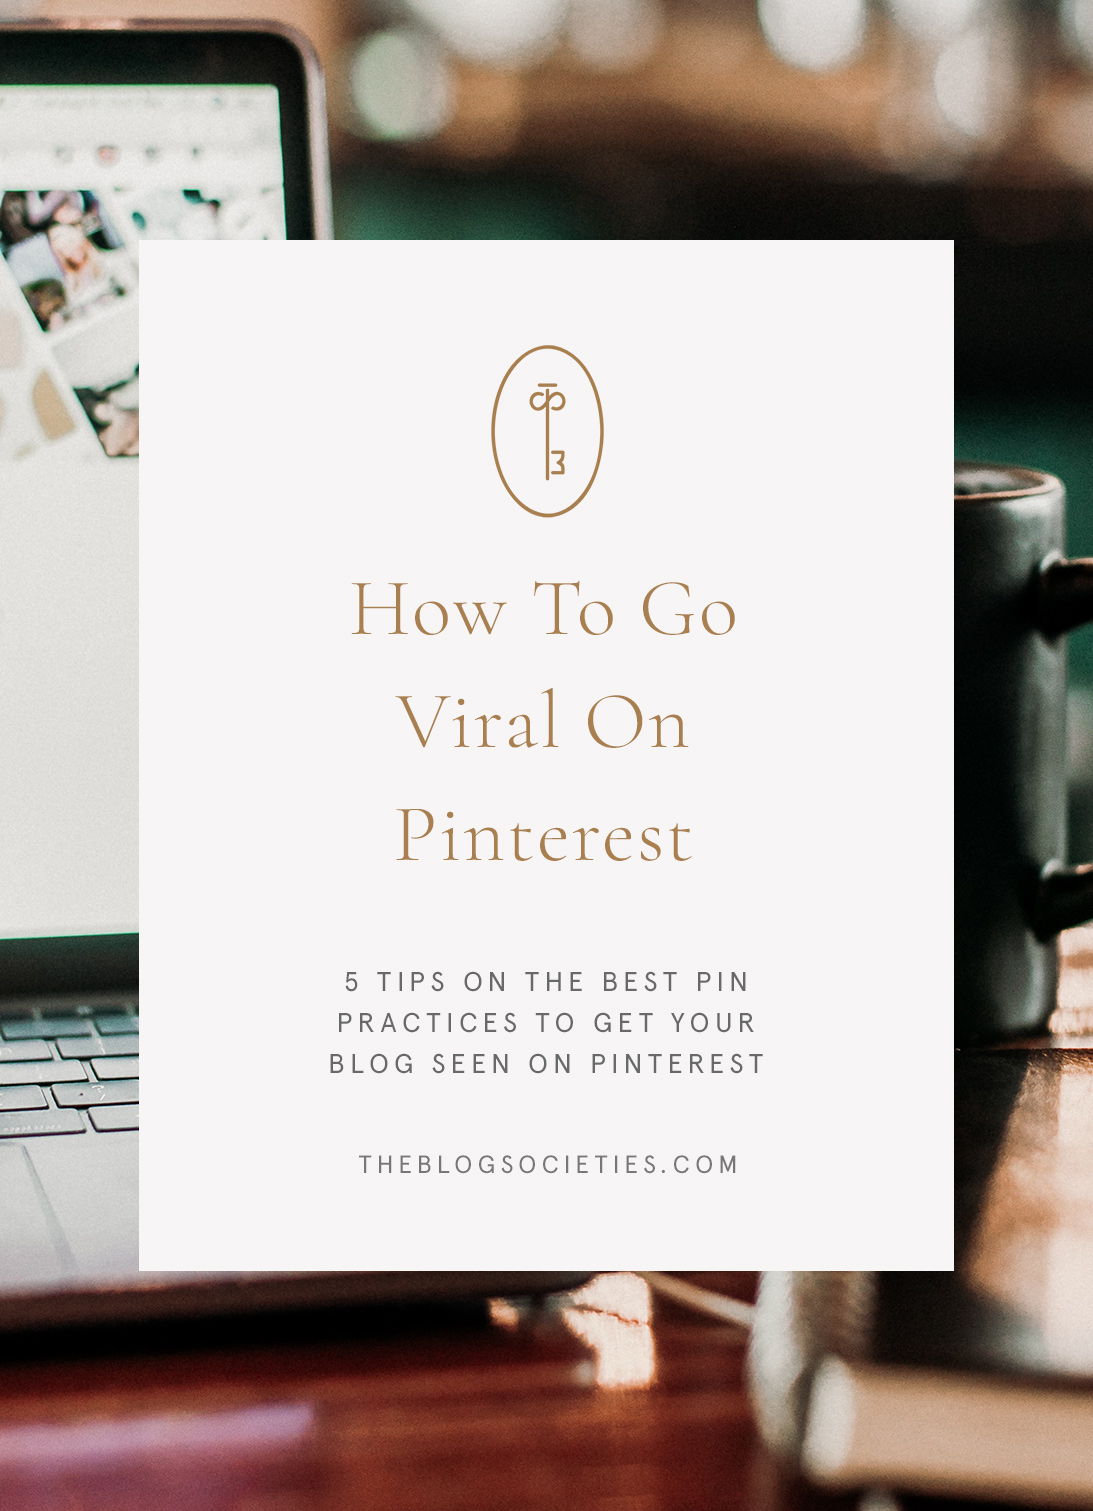 how to go viral on pinterest, pinterest tips for bloggers #pinterest #pinteresttips | 5 Essential Pinterest Tips To Getting Noticed On Pinterest featured by popular blogger community, The Blog Societies